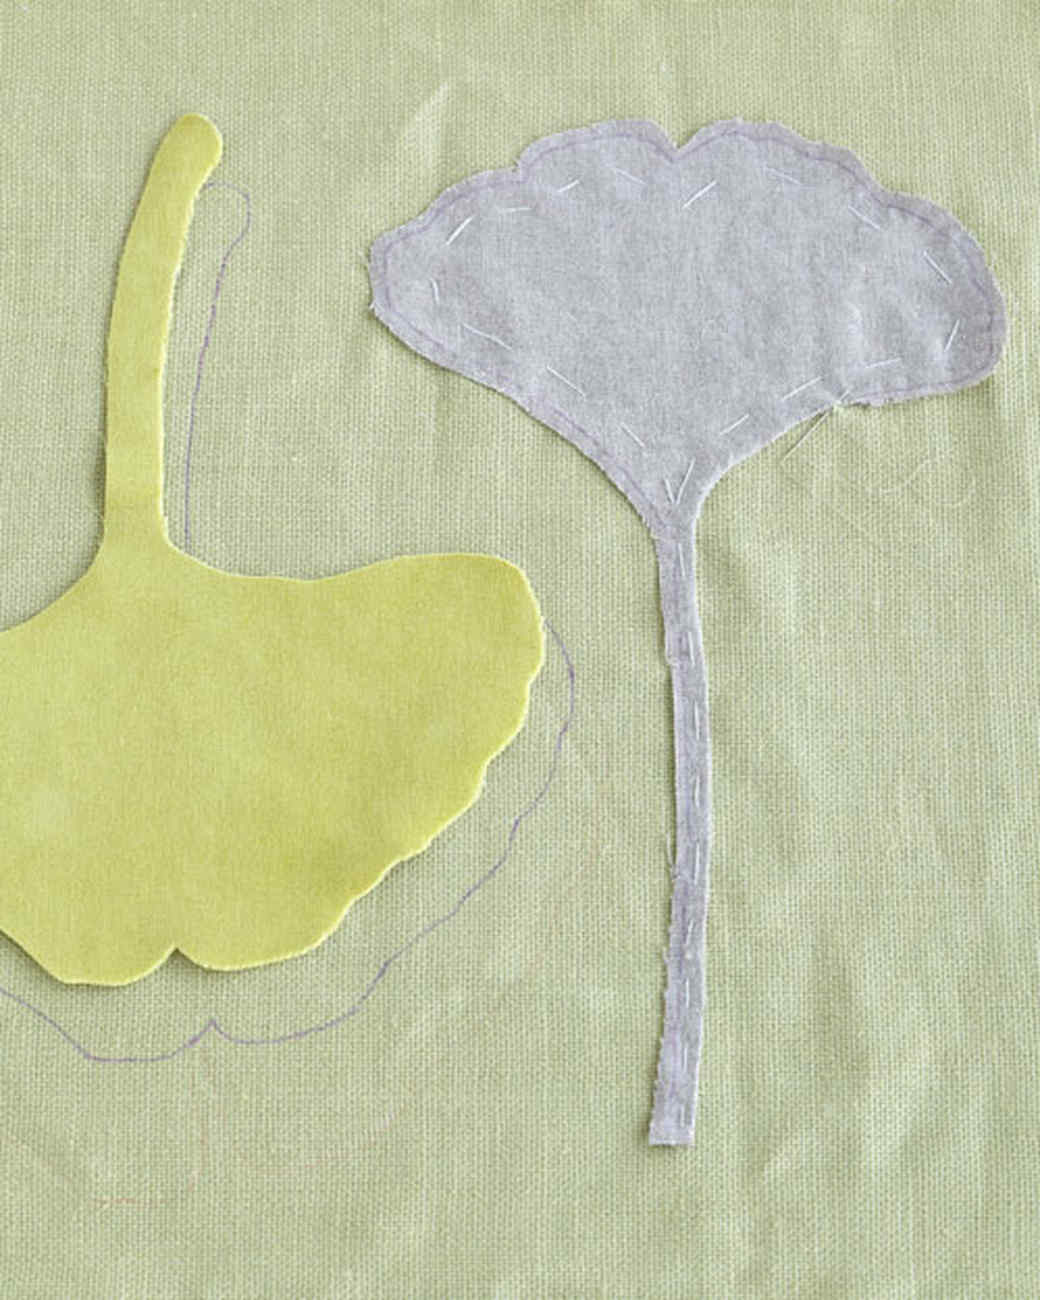 d105027ms_sewing_book_ginko_ht2.jpg